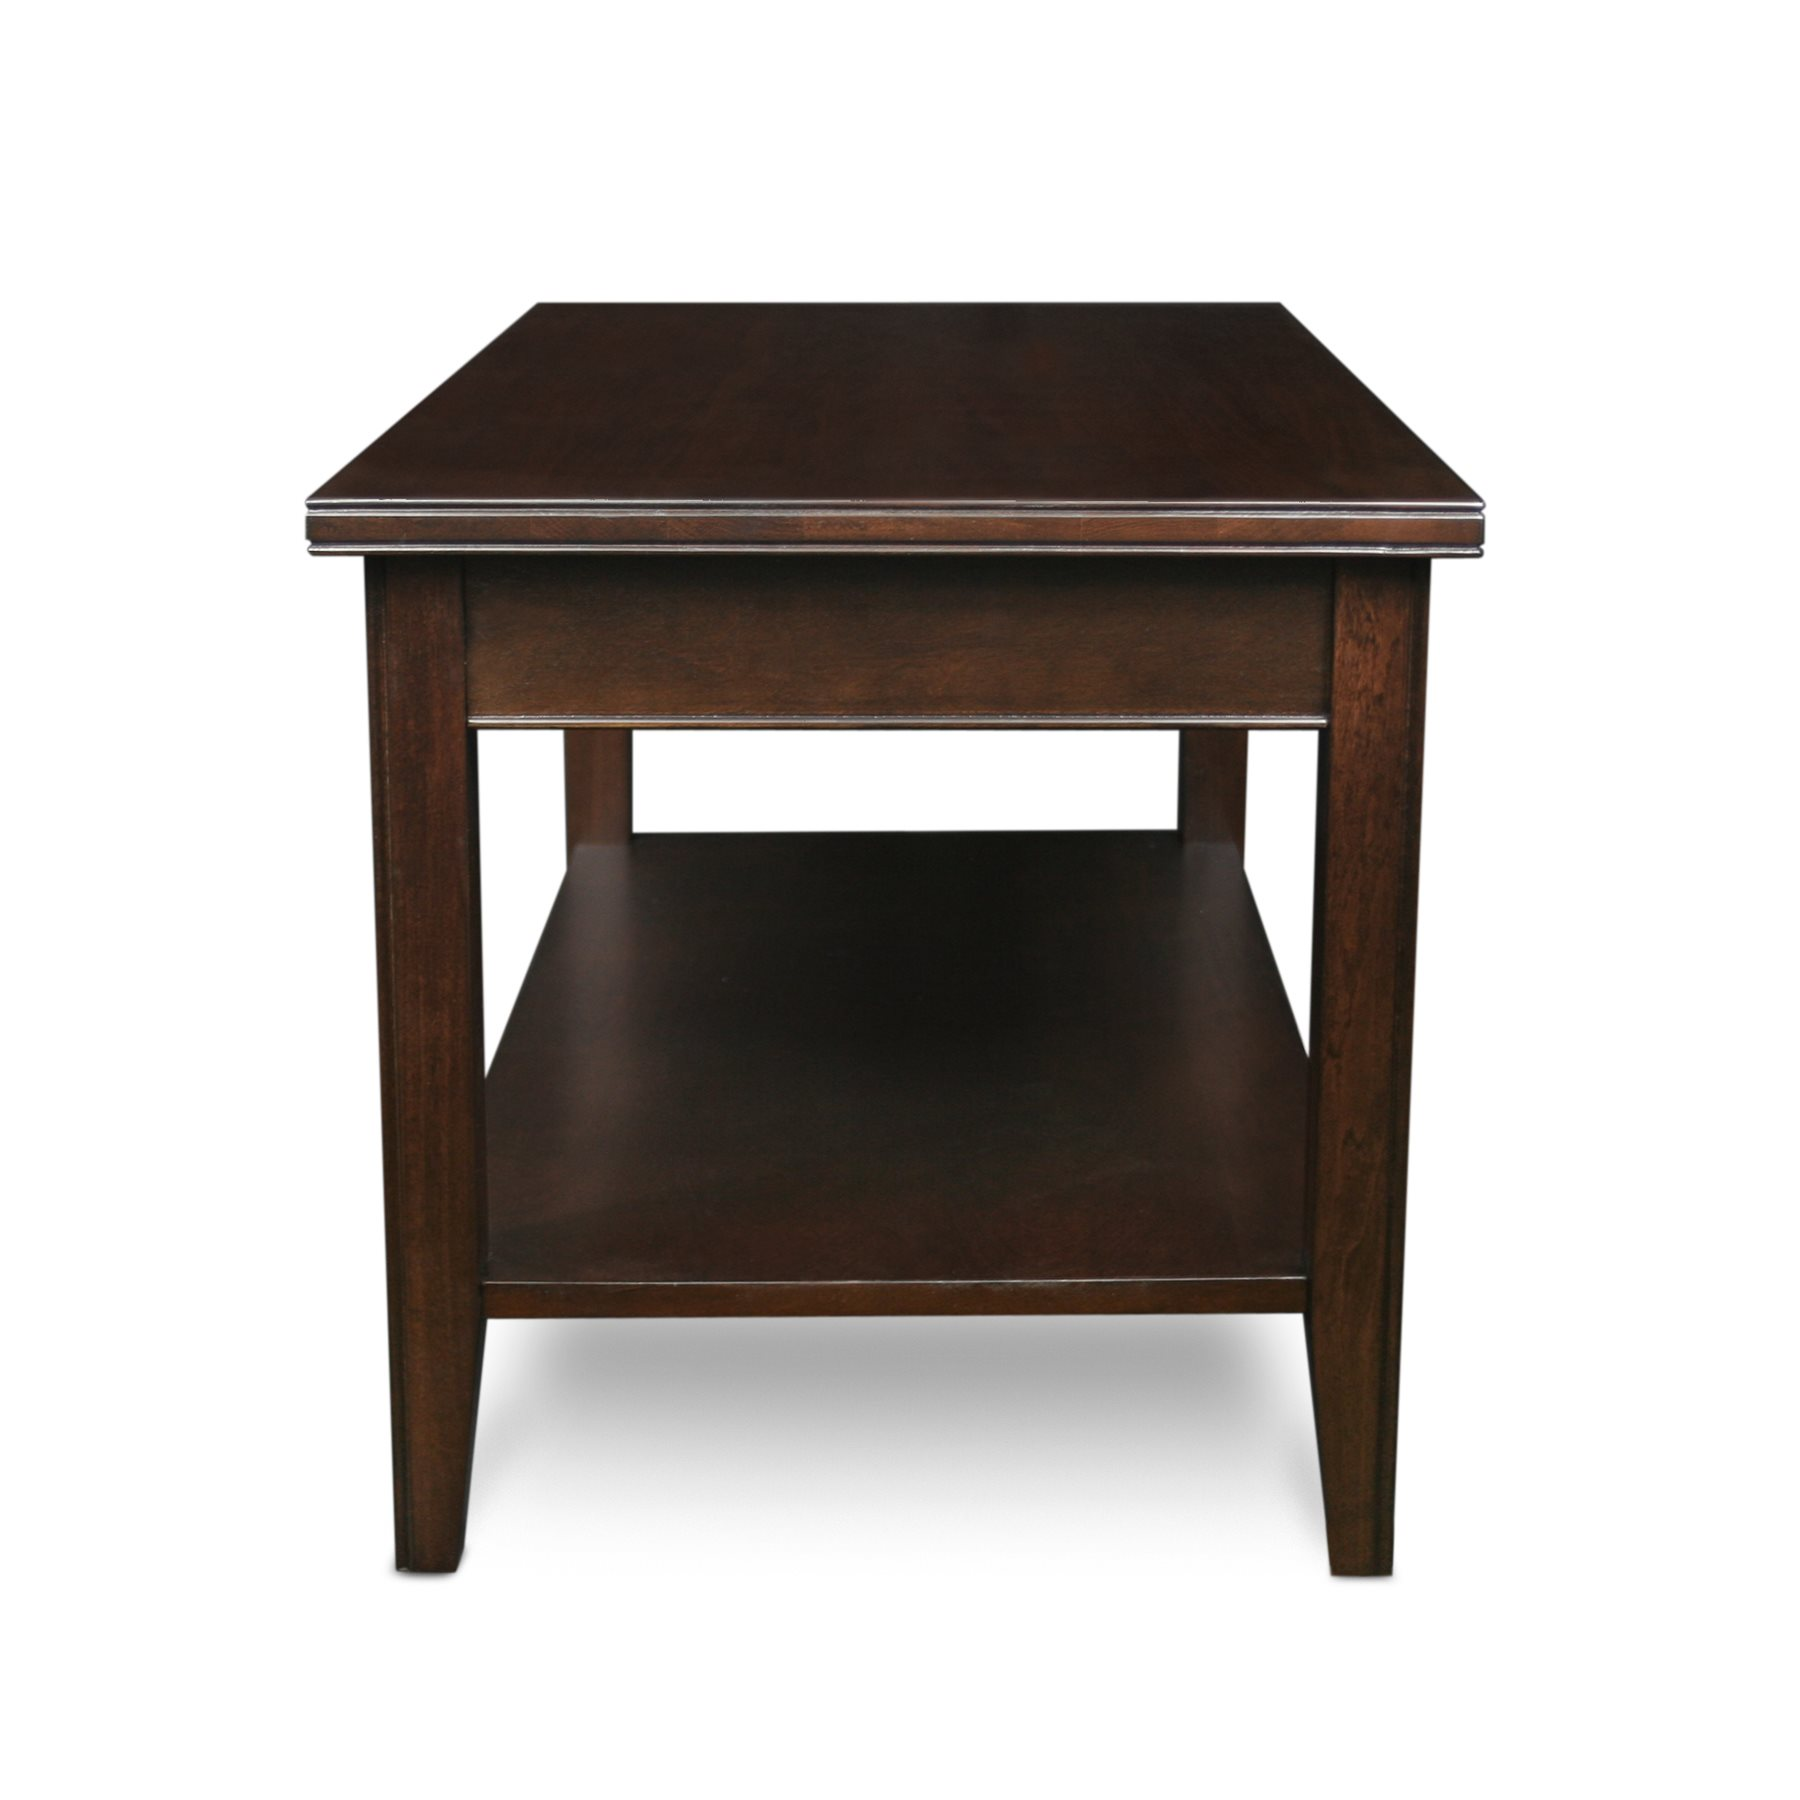 Leick Furniture 10504 Laurent Coffee Table LEI-10504